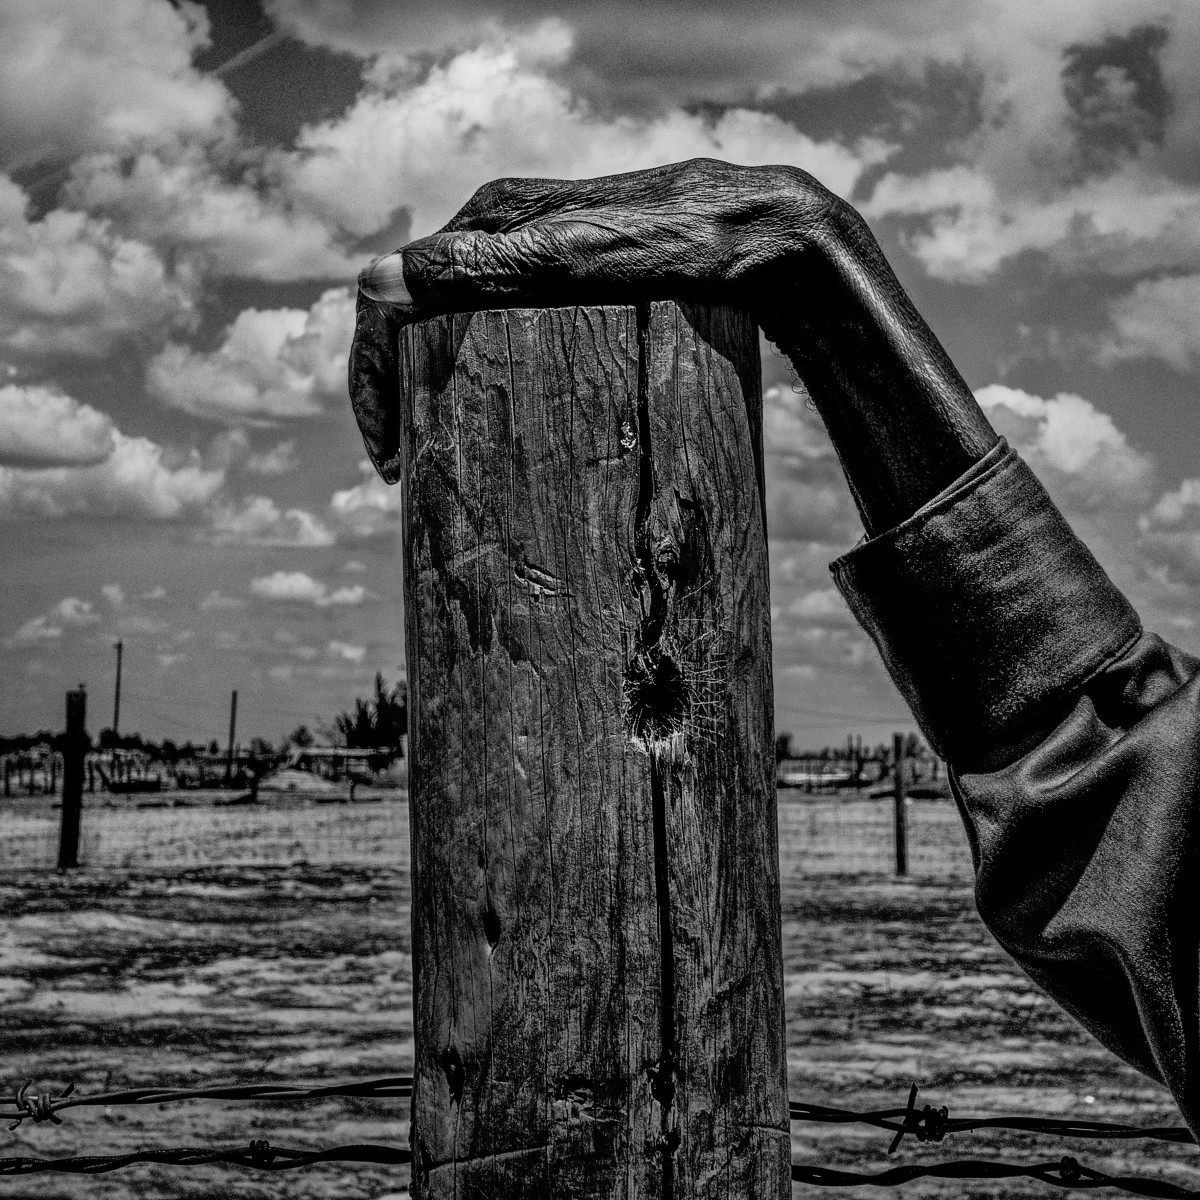 A fence post in Allensworth, California, 2014.